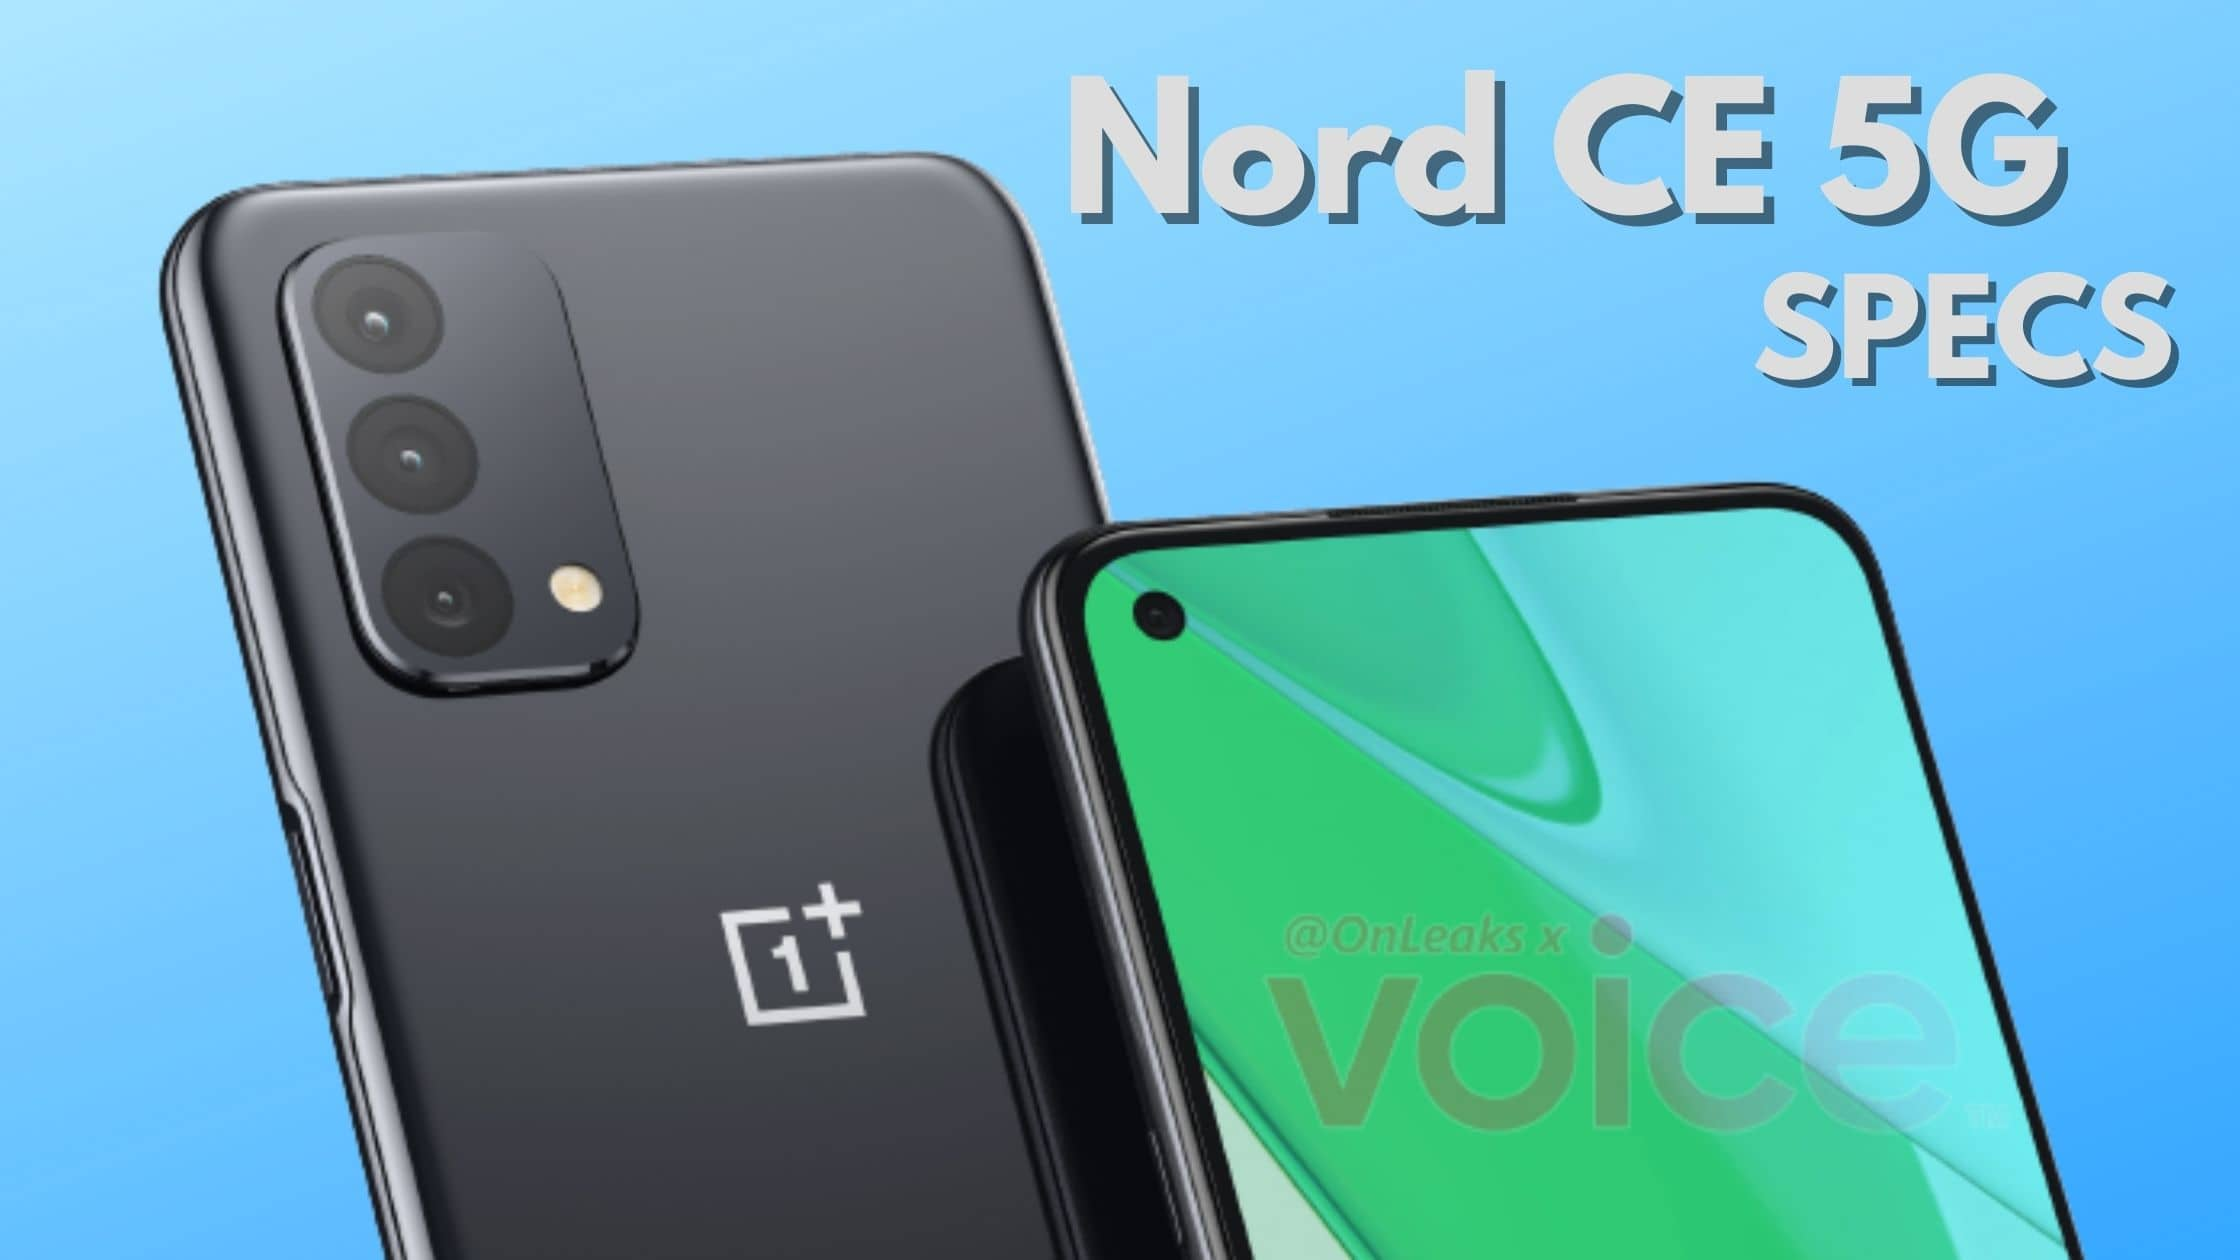 oneplus-nord-ce-5g-leaked-specifactions